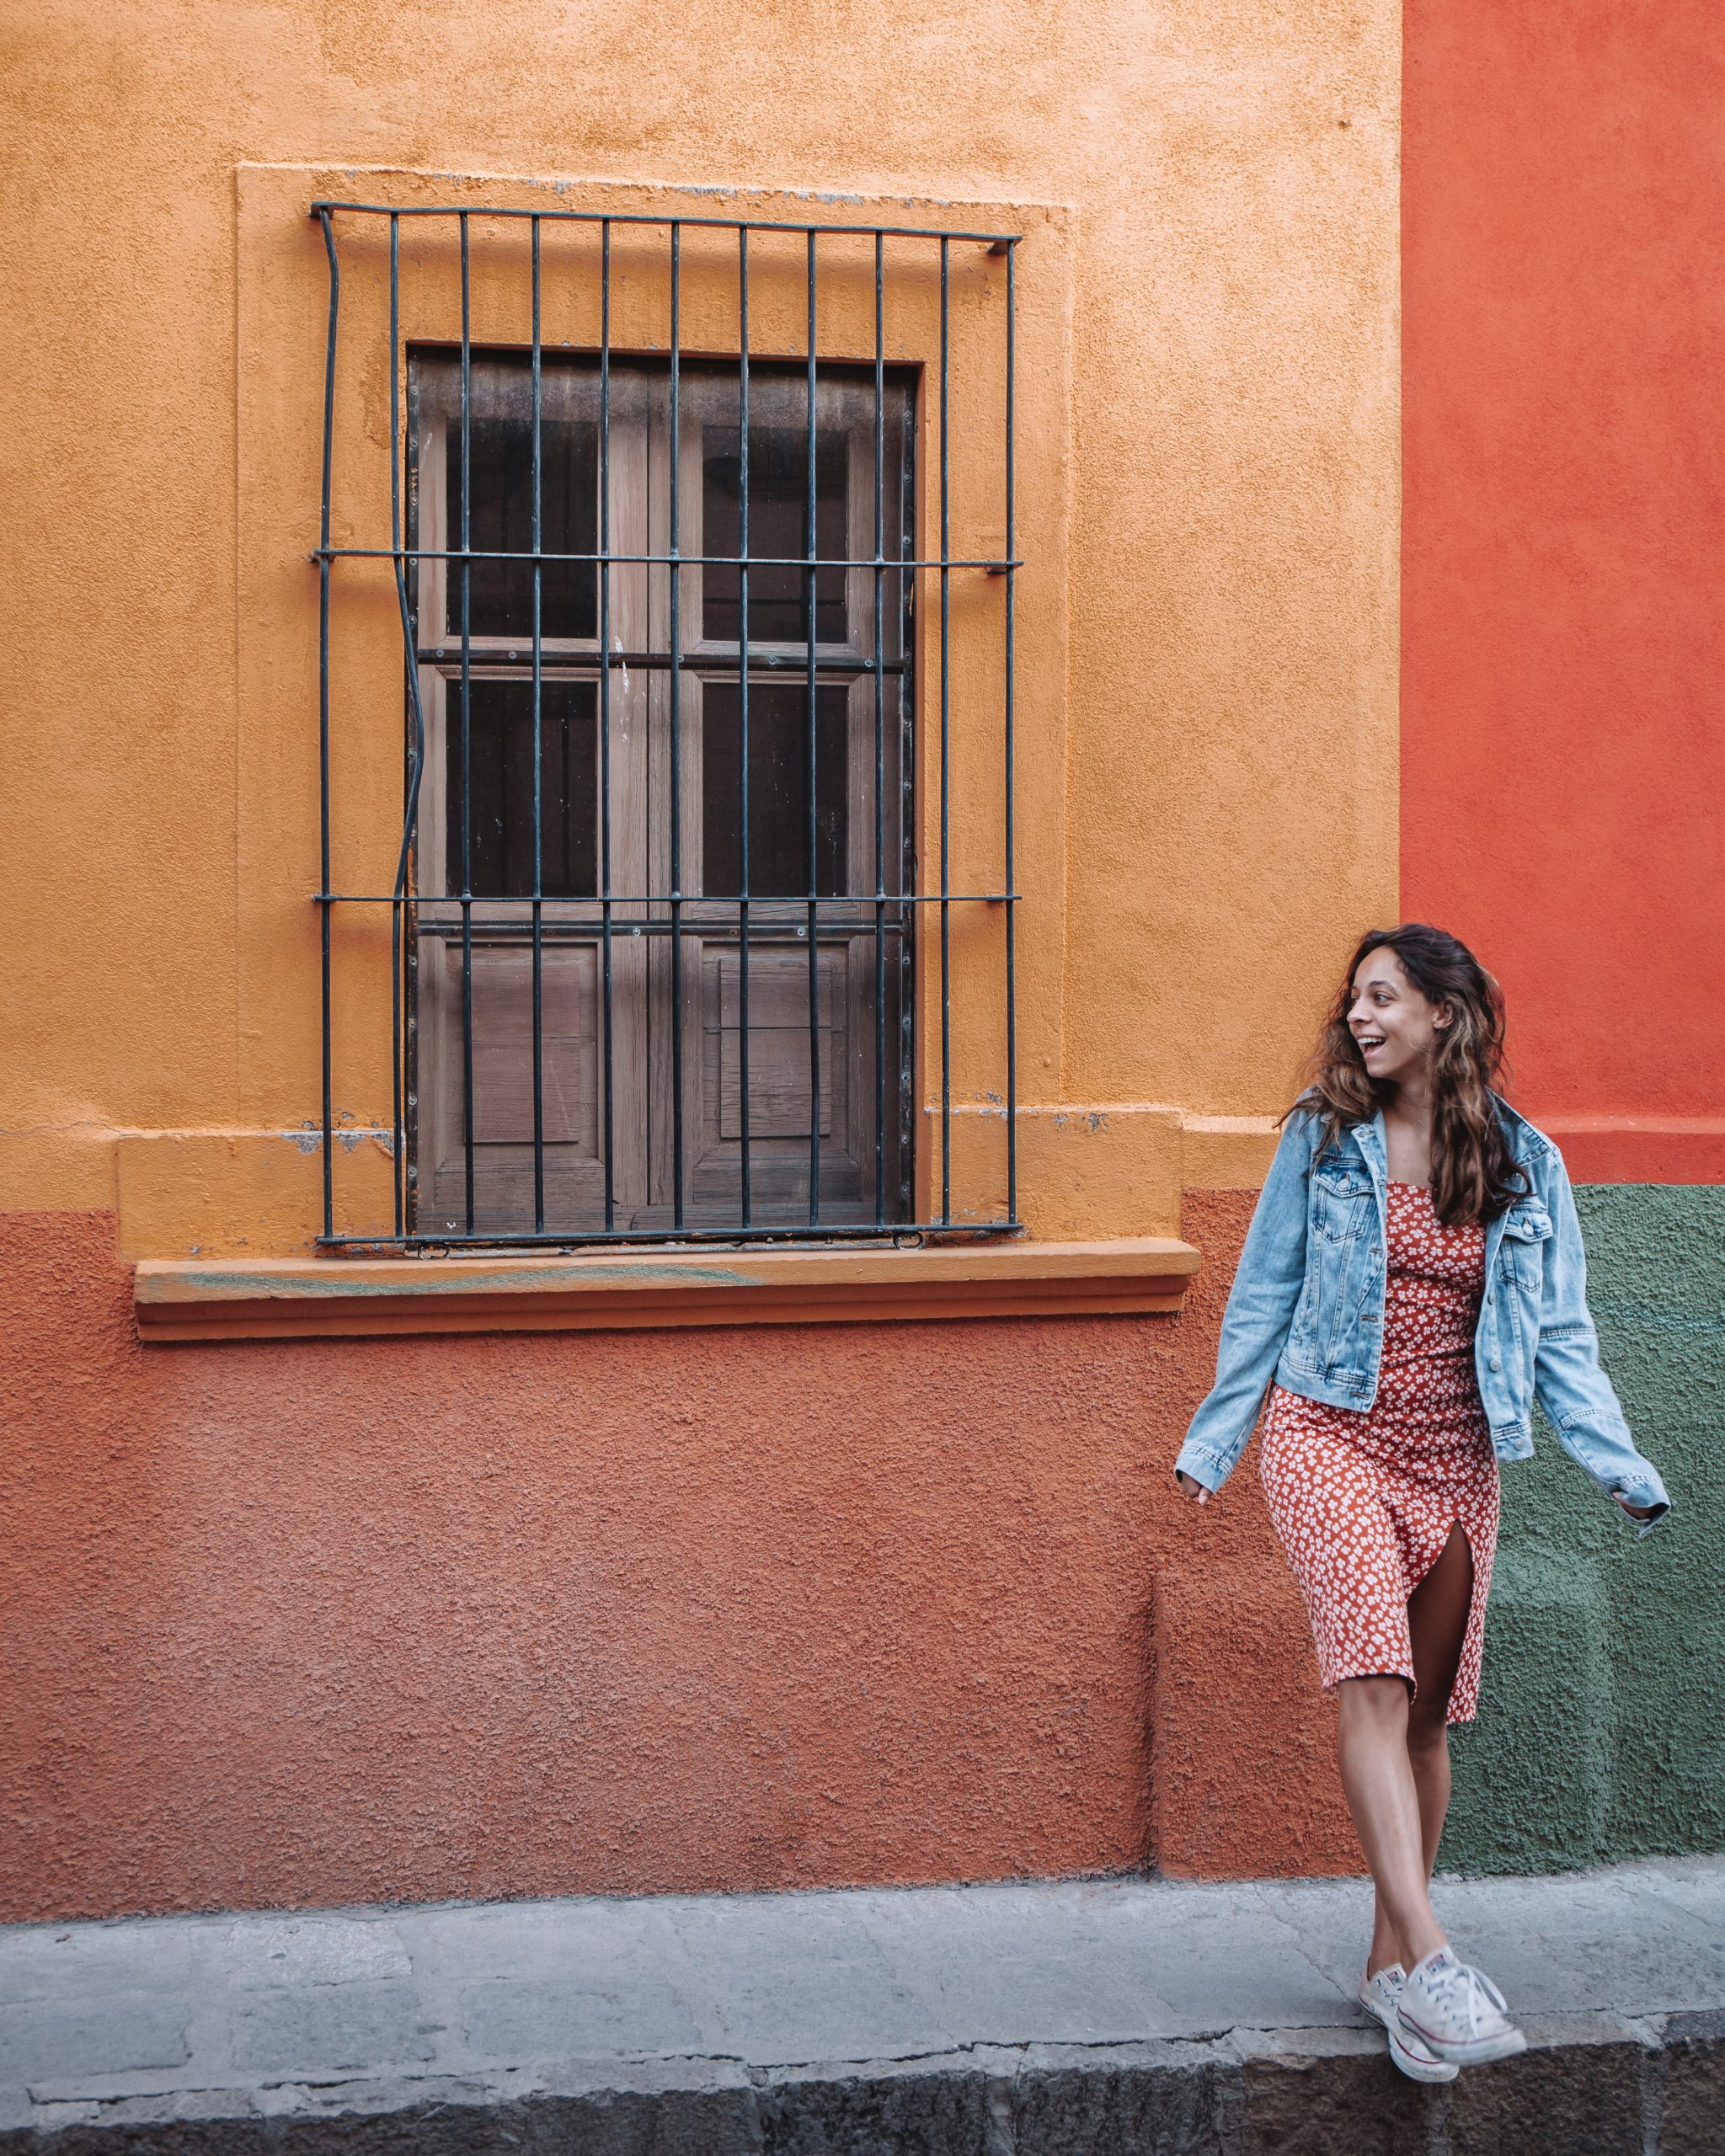 Girl in jean jacket in front of colorful wall